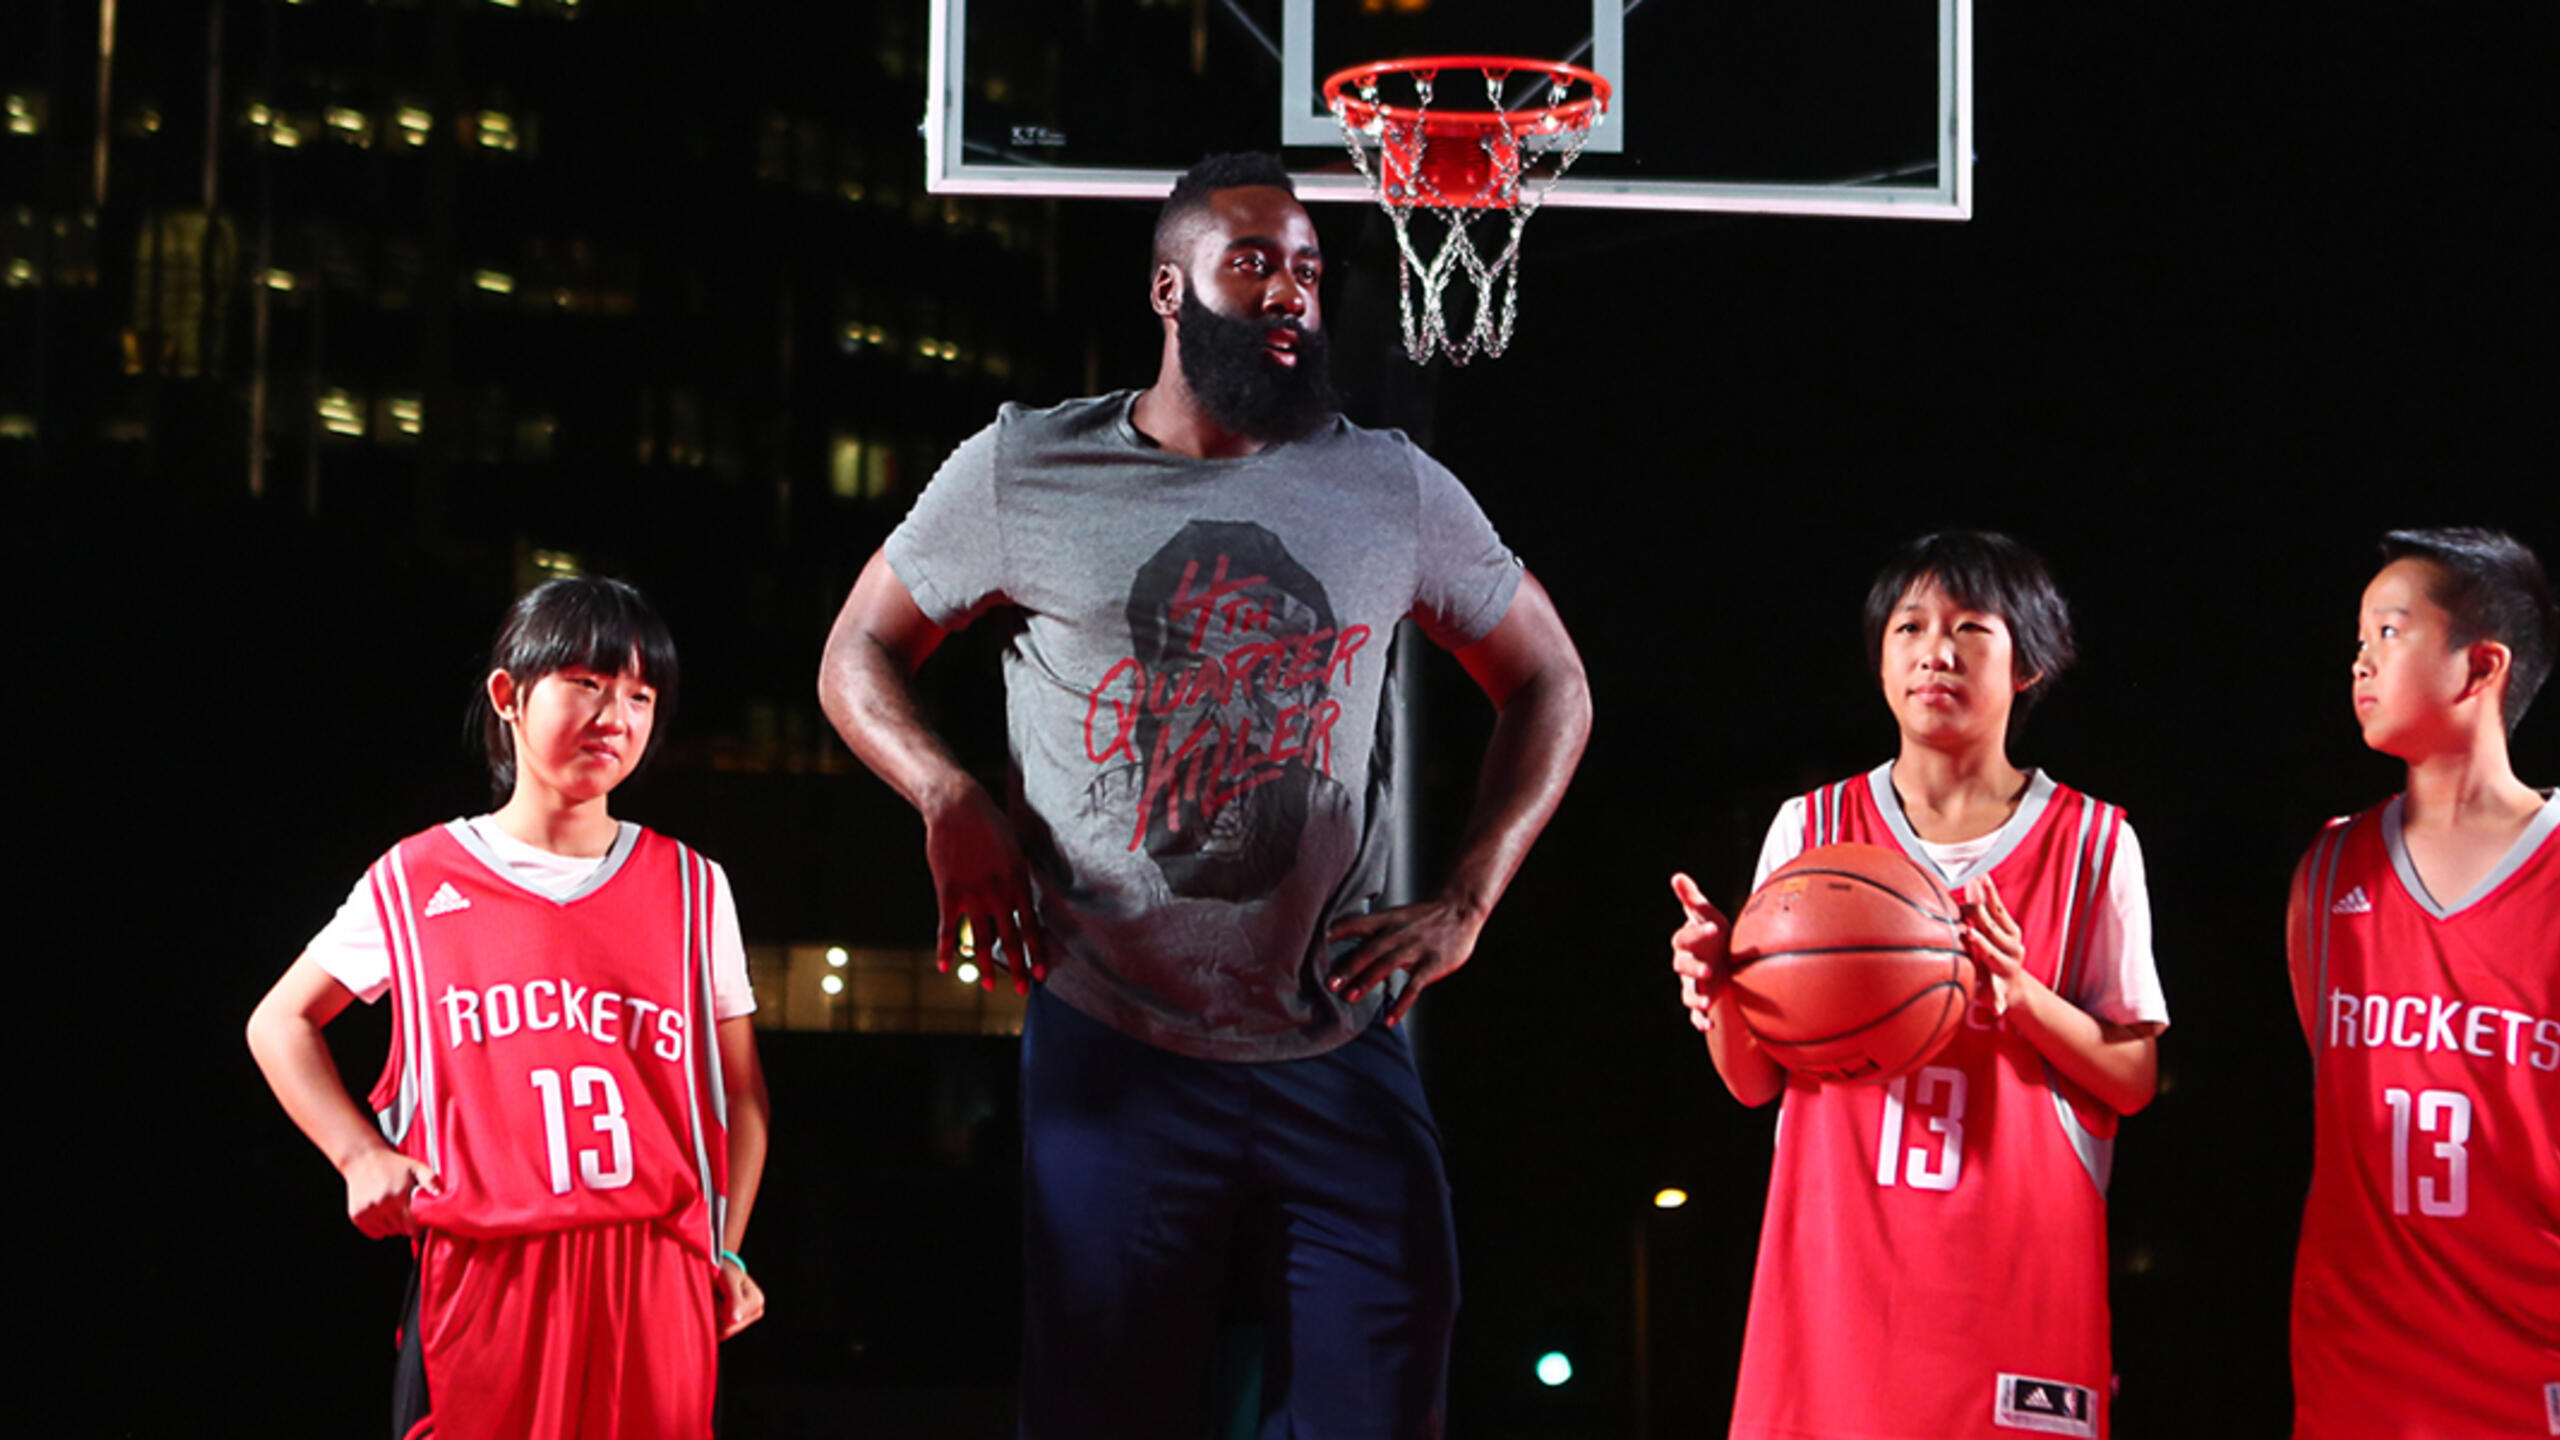 Houston Rockets star James Harden with young fans during a visit to China in 2016.